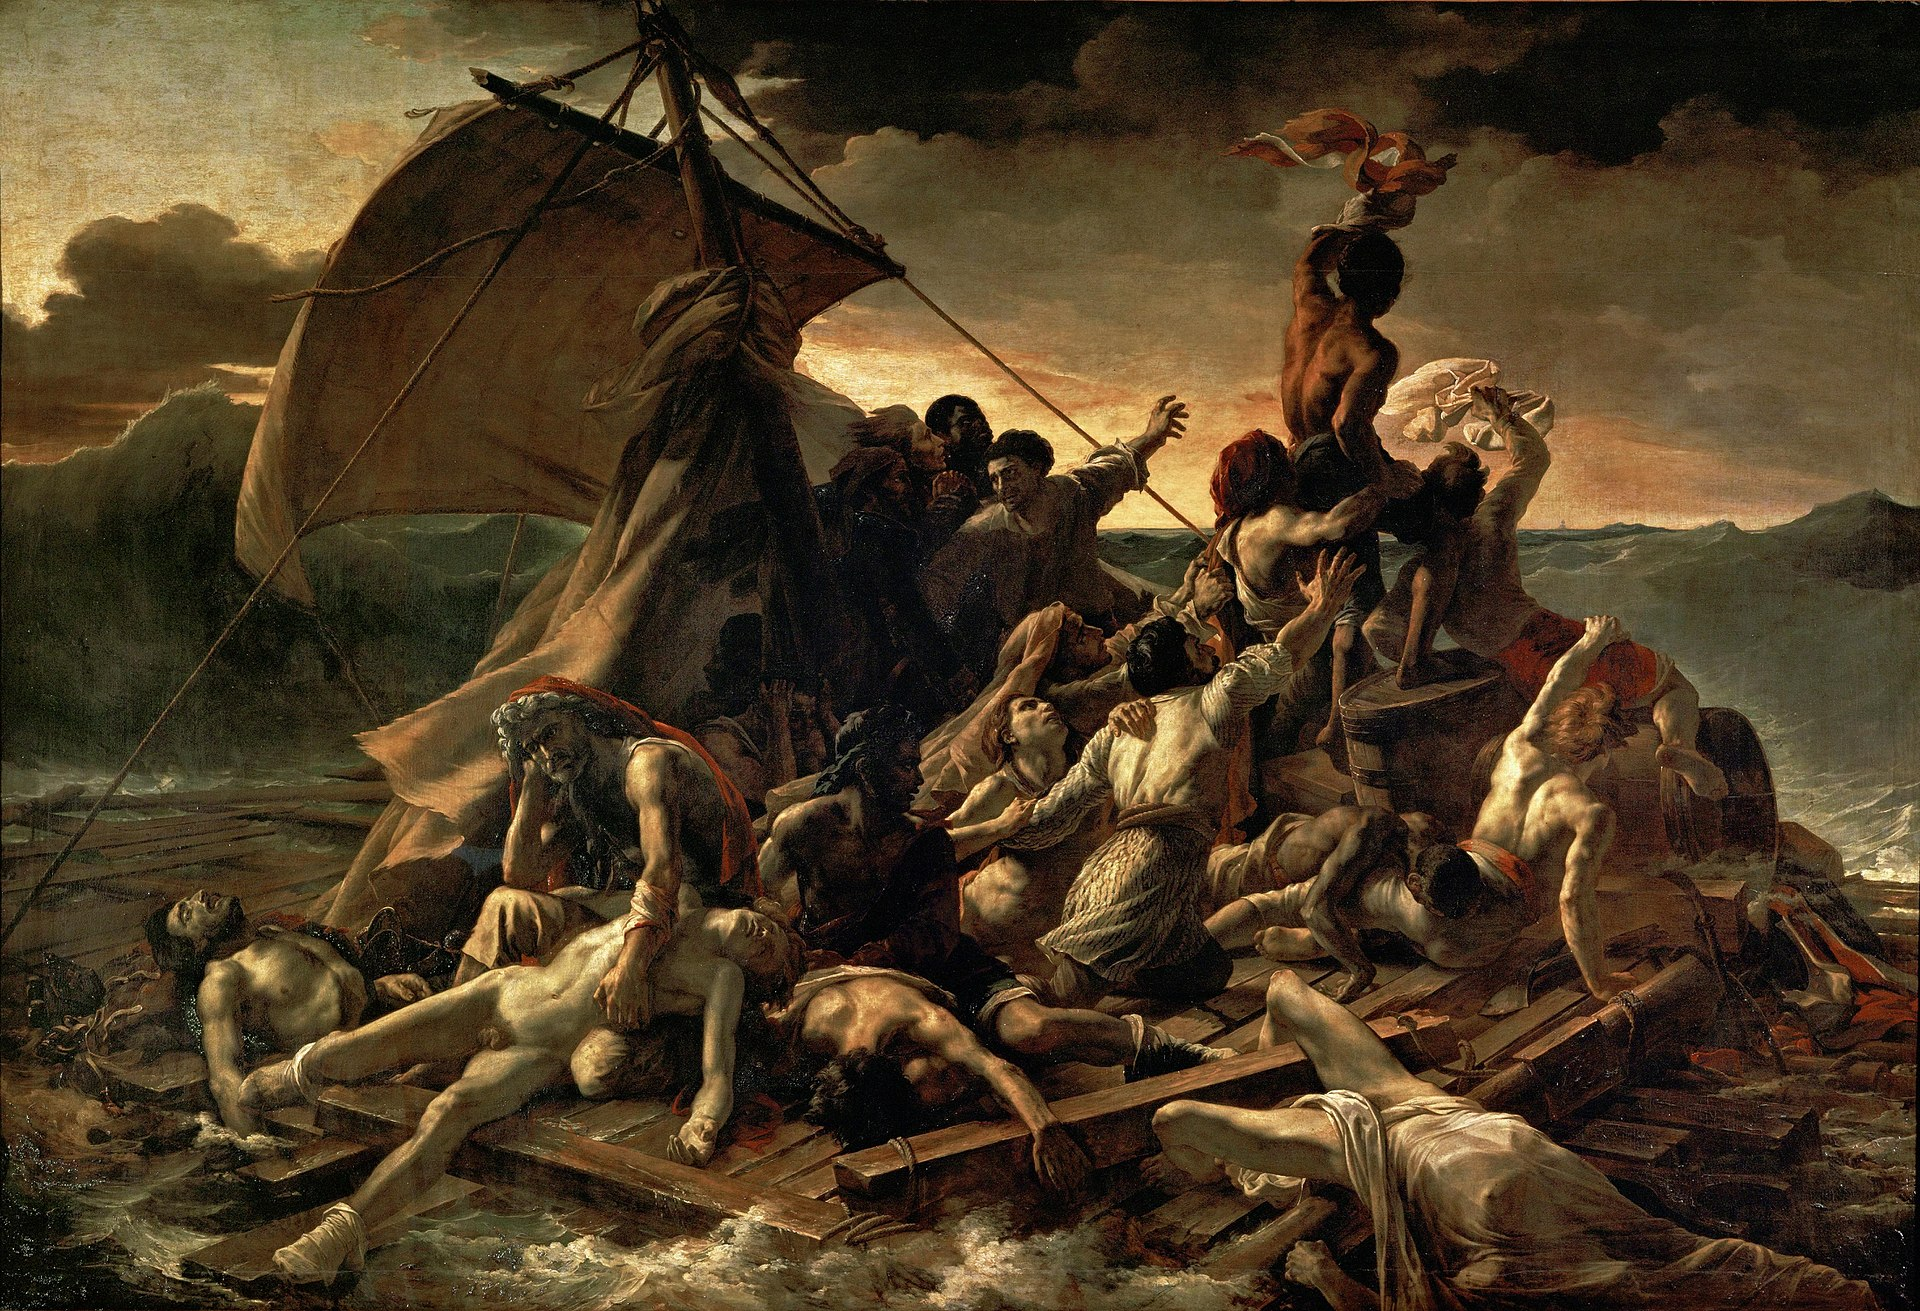 "Theodore Gericault's ""The Raft of the Medusa"" epitomises the depiction of a dramatic instant in a narrative. It achieves a level of poetry that has made it iconic, in part because the specific story is represents is a potent metaphor for the shared existential angst of the human condition."